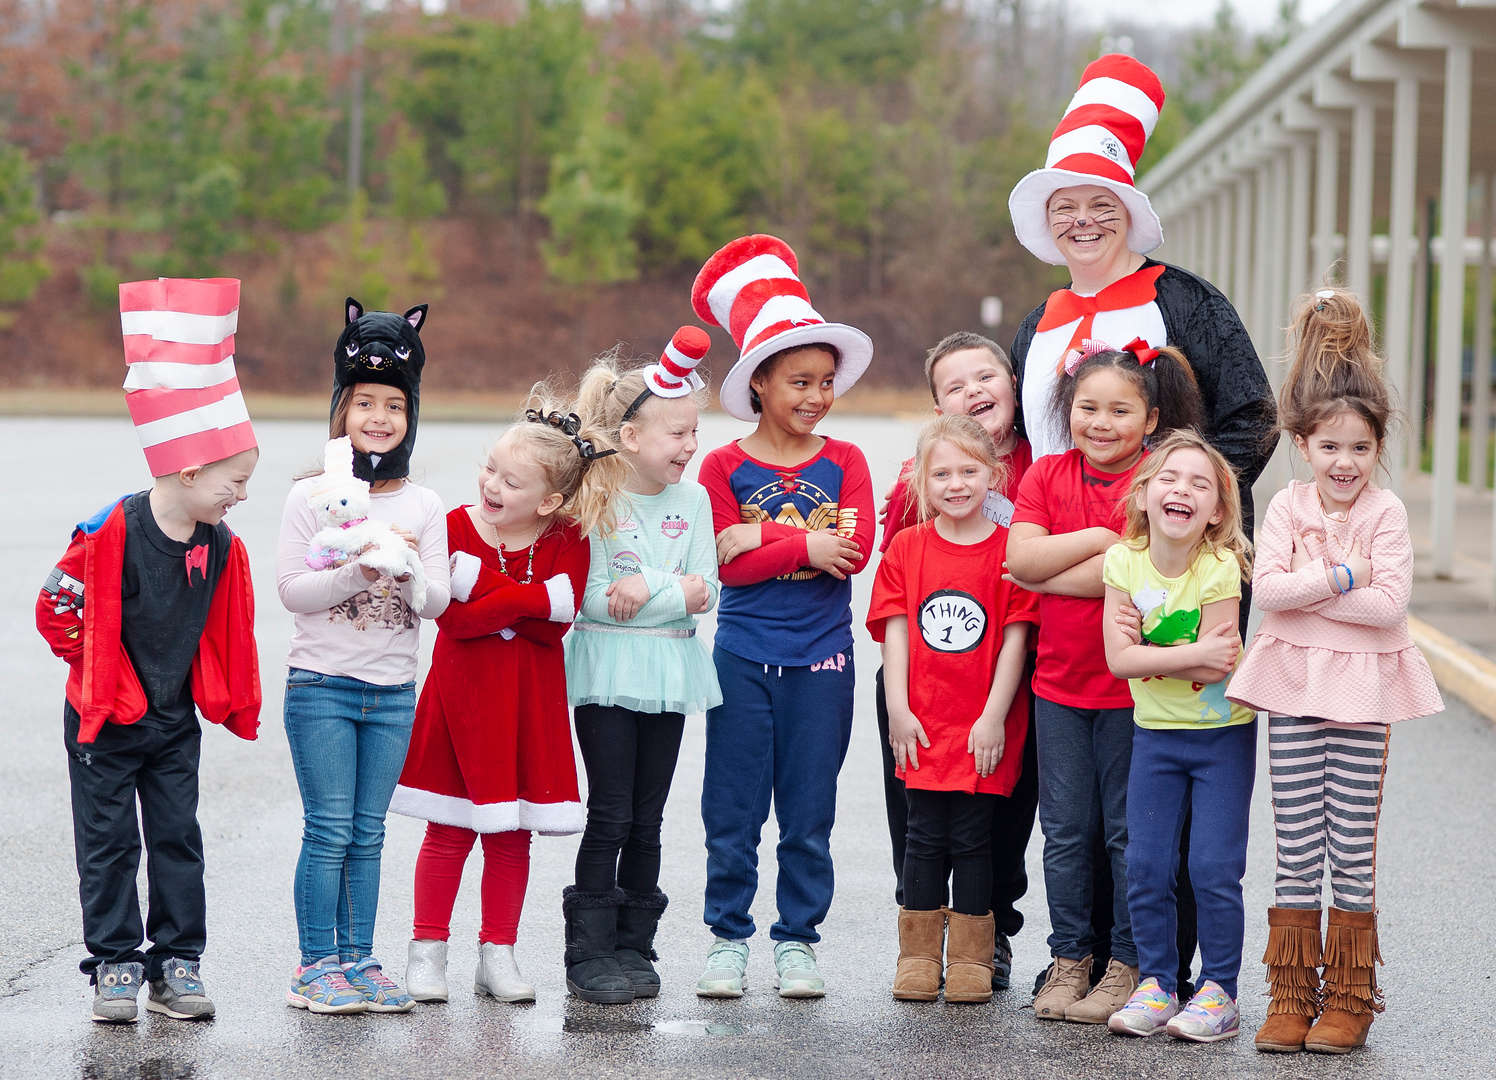 Students dressed up for Dr. Seuss Day